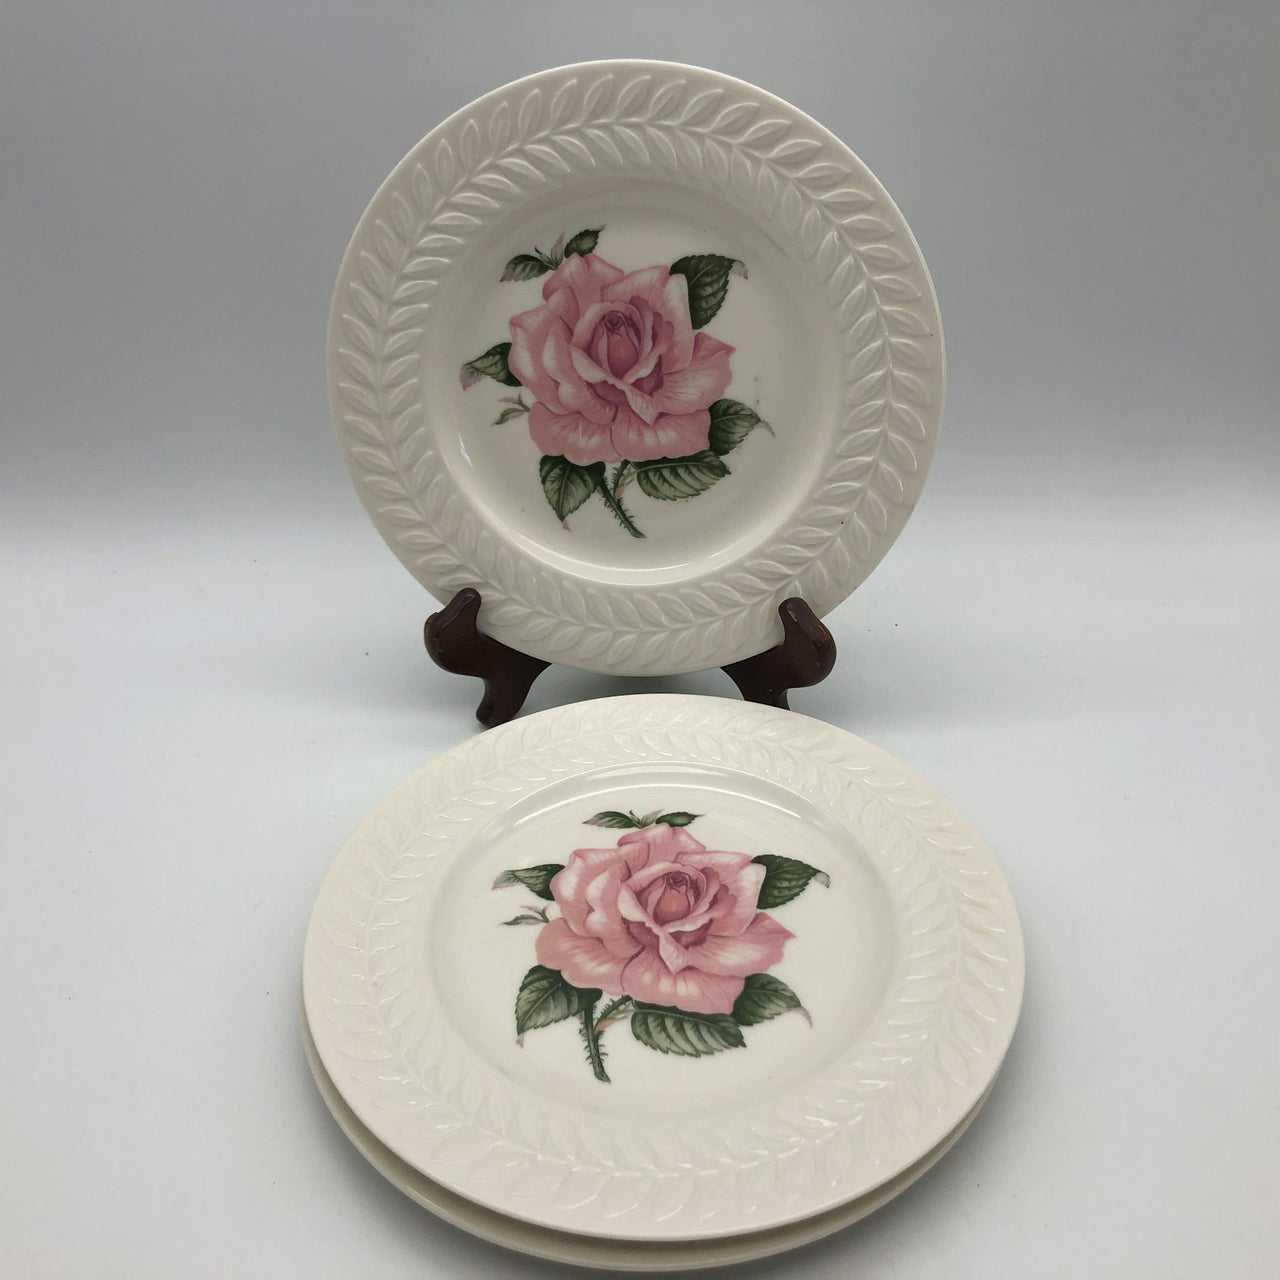 3 Theodore Haviland Regents Park Rose Salad Plates 8-1/8""